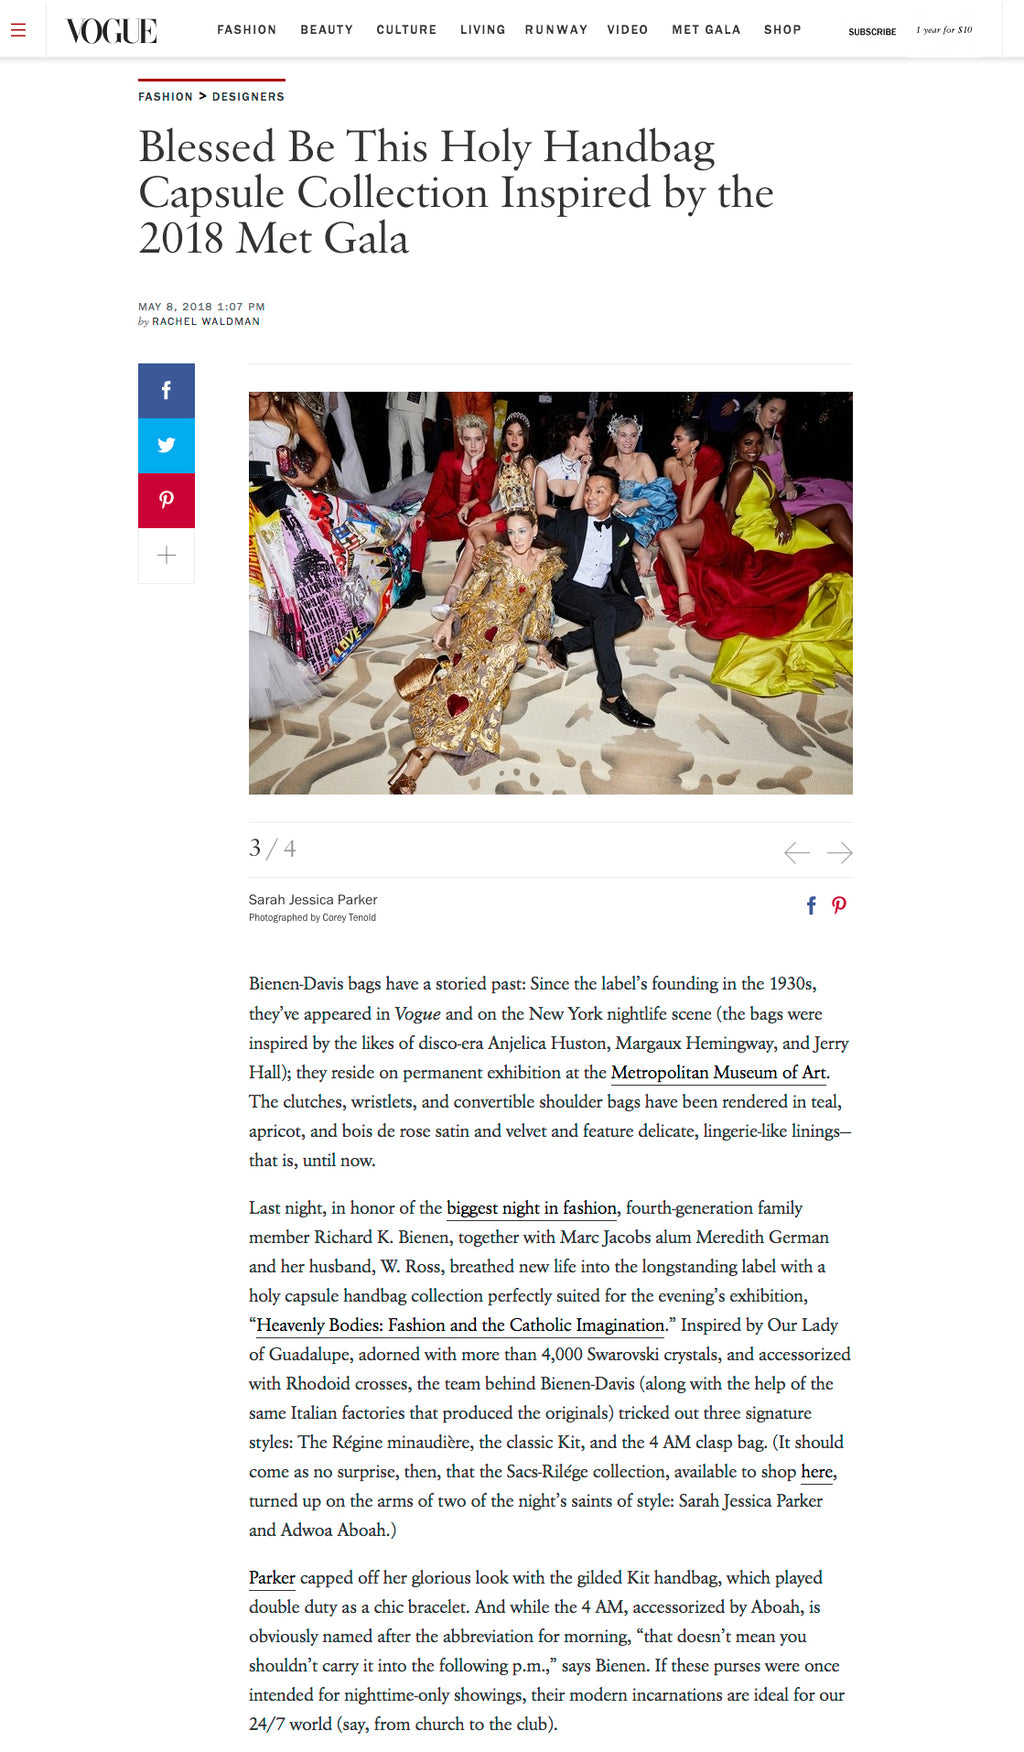 Bienen-Davis Vogue.com May 2018 Met Gala